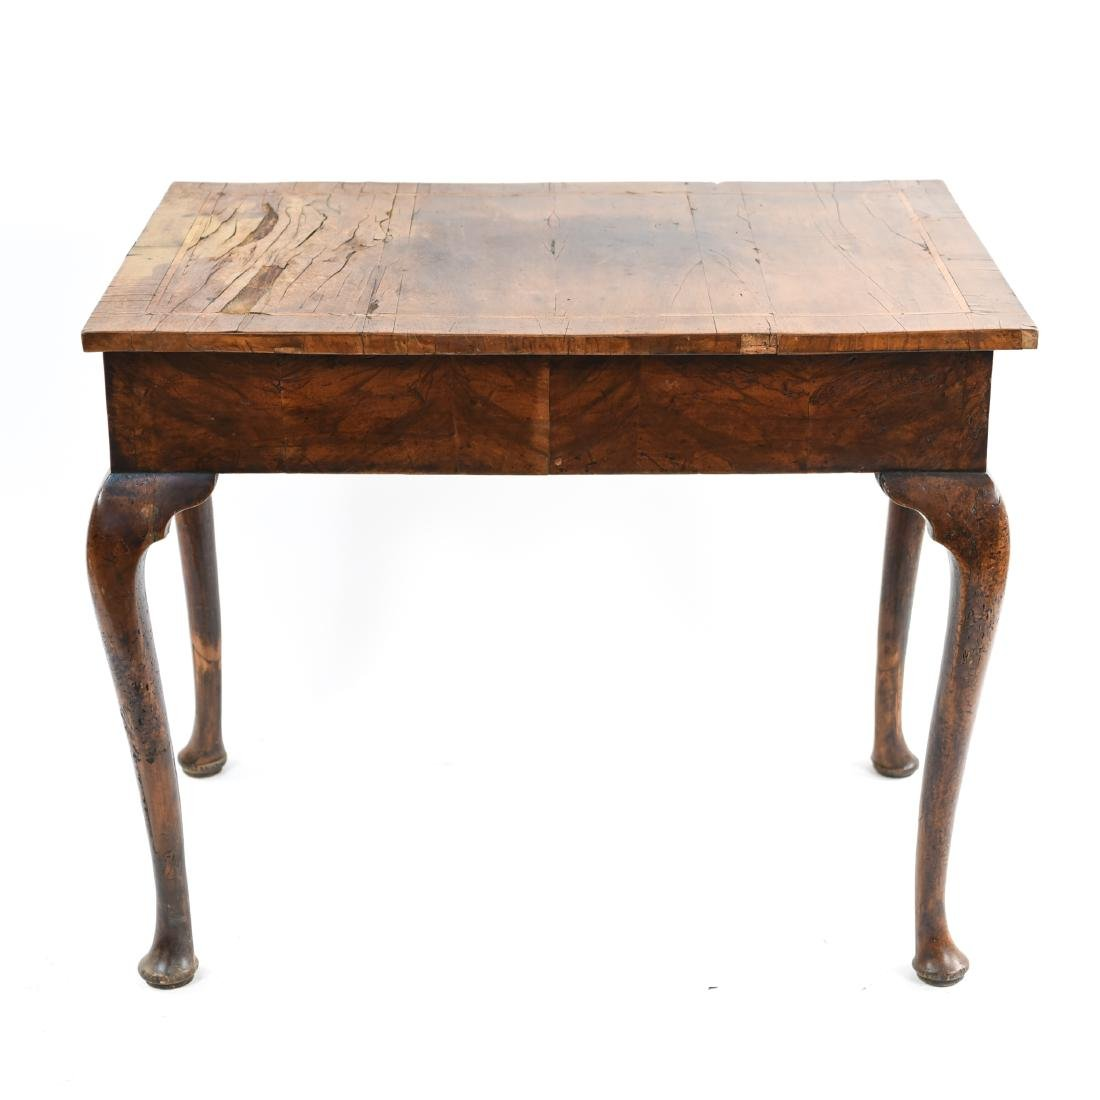 ANTIQUE QUEEN ANNE STYLE TABLE